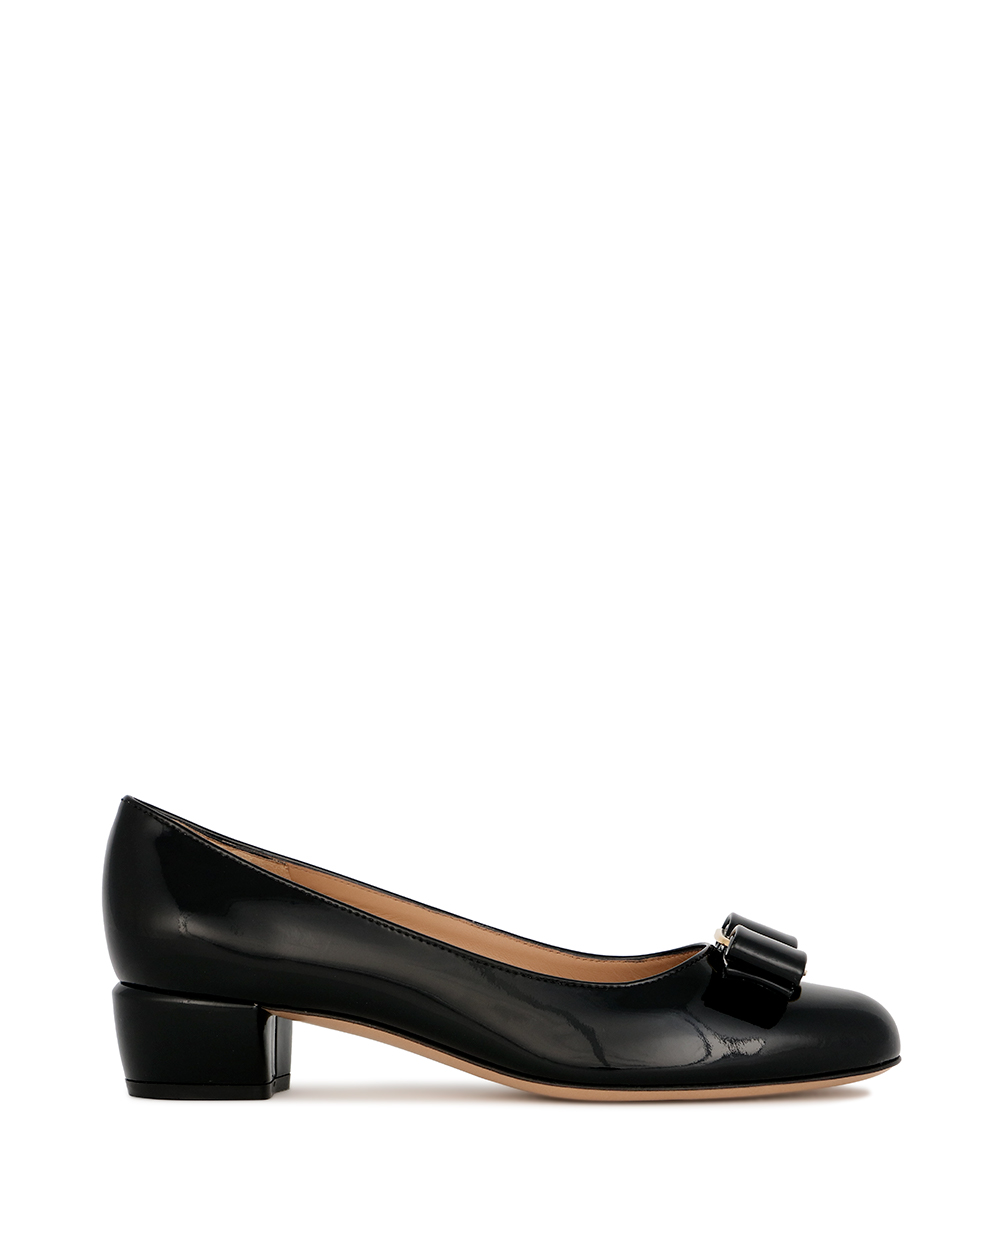 Vara Bow Ballerina Pumps